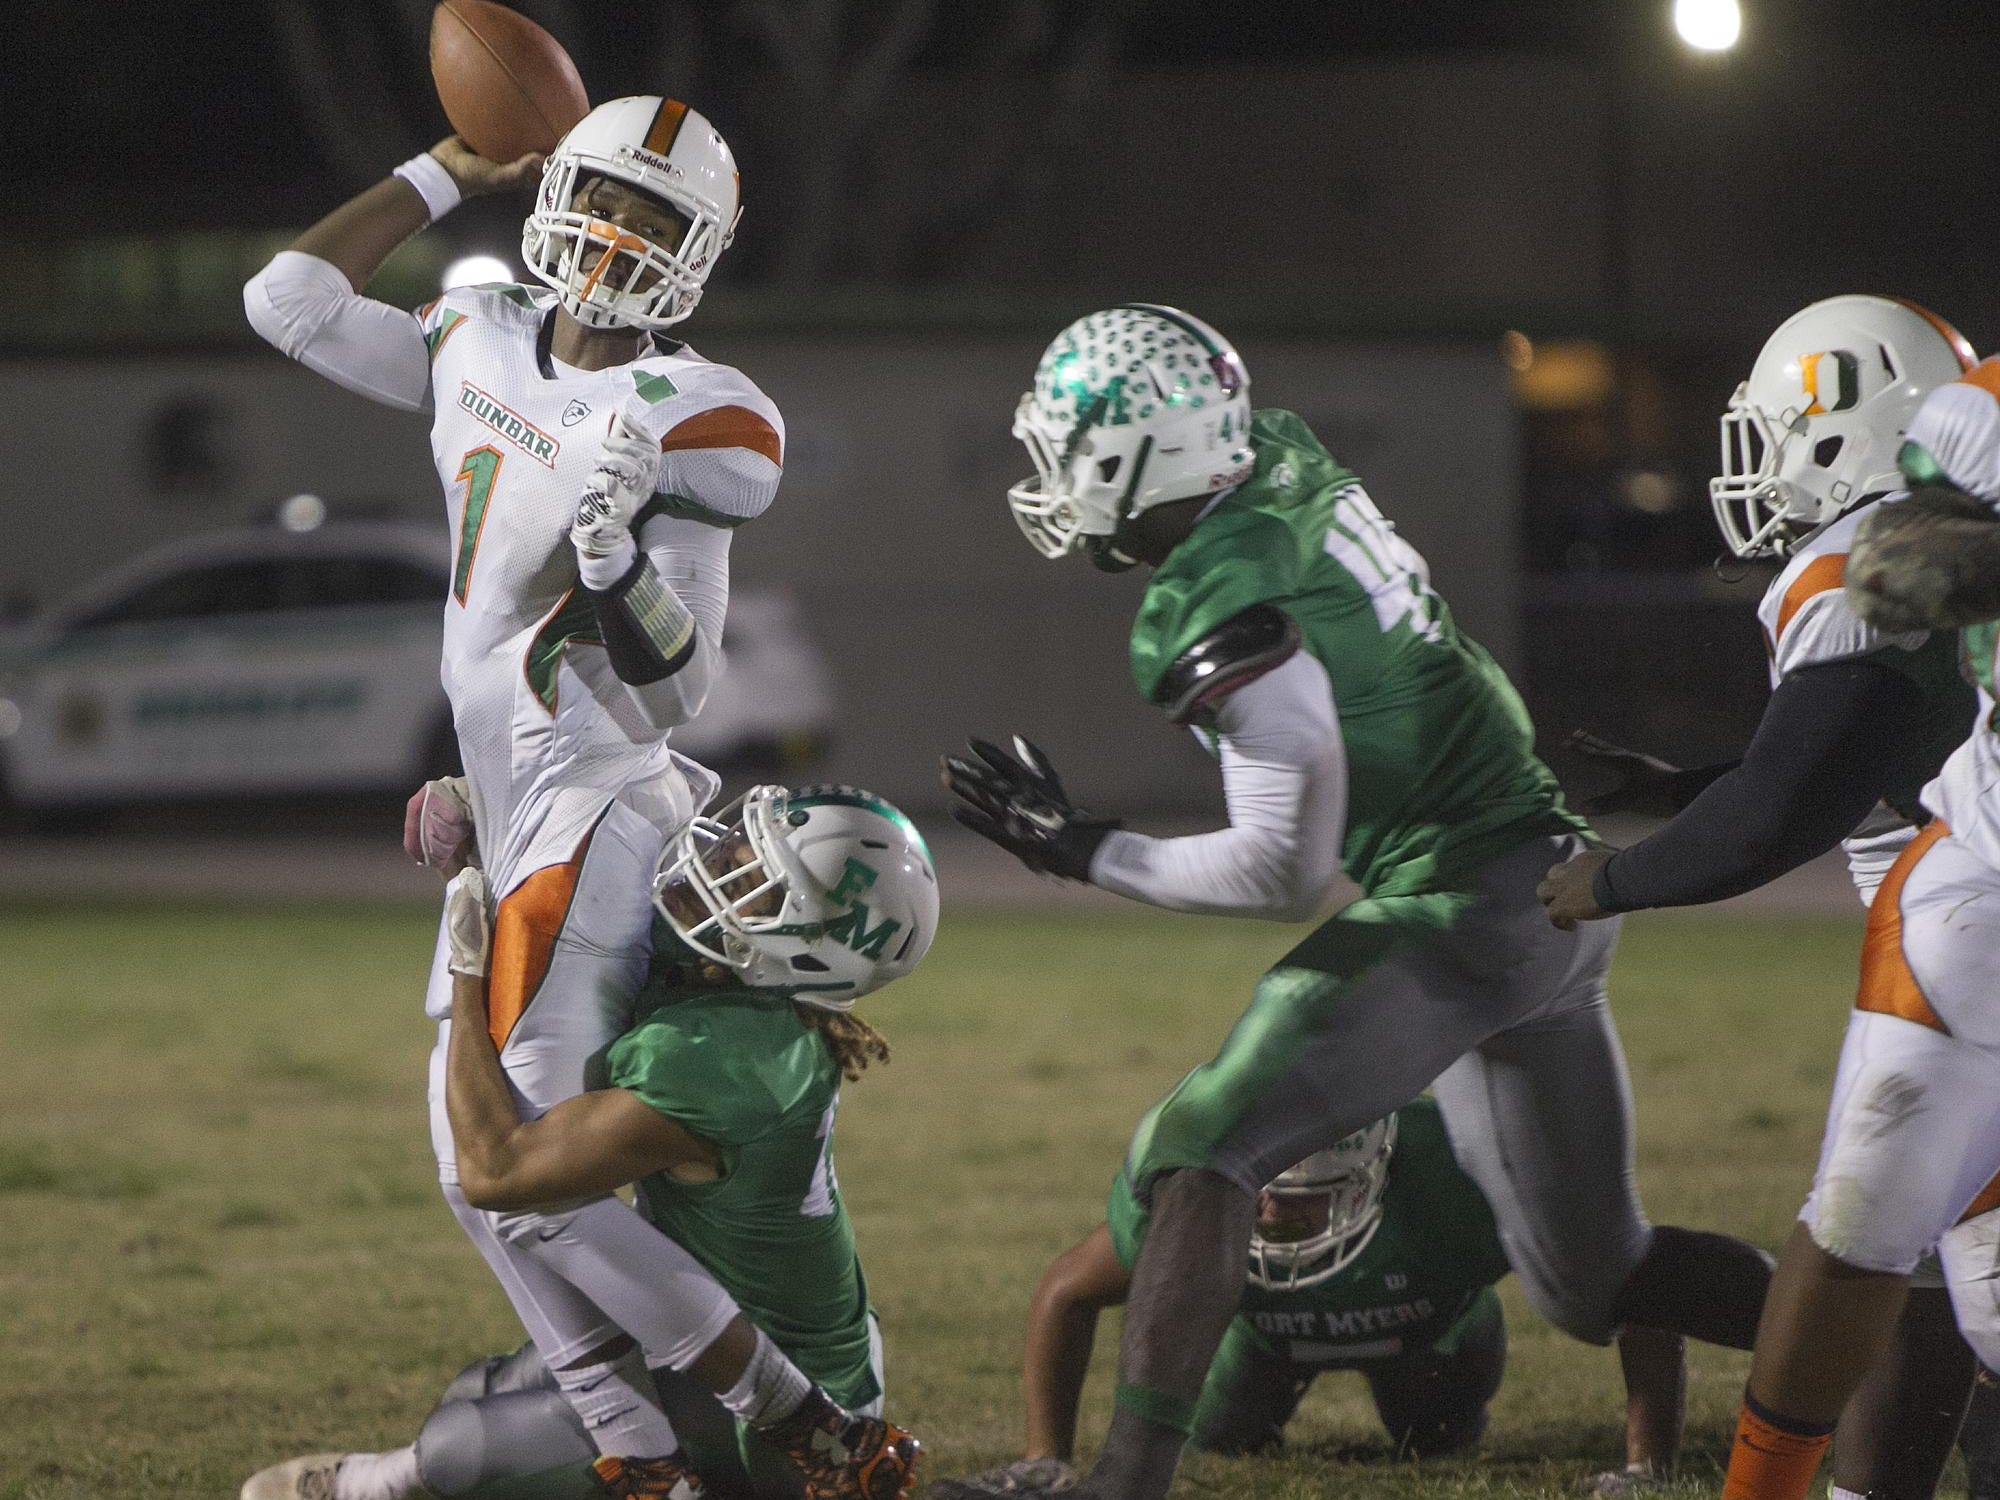 Dunbar QB Jairus Johnson is wrapped up by Fort Myers defender Eddie Ferguson Friday at Sam Sirianni Field in Fort Myers. The pass was incomplete.